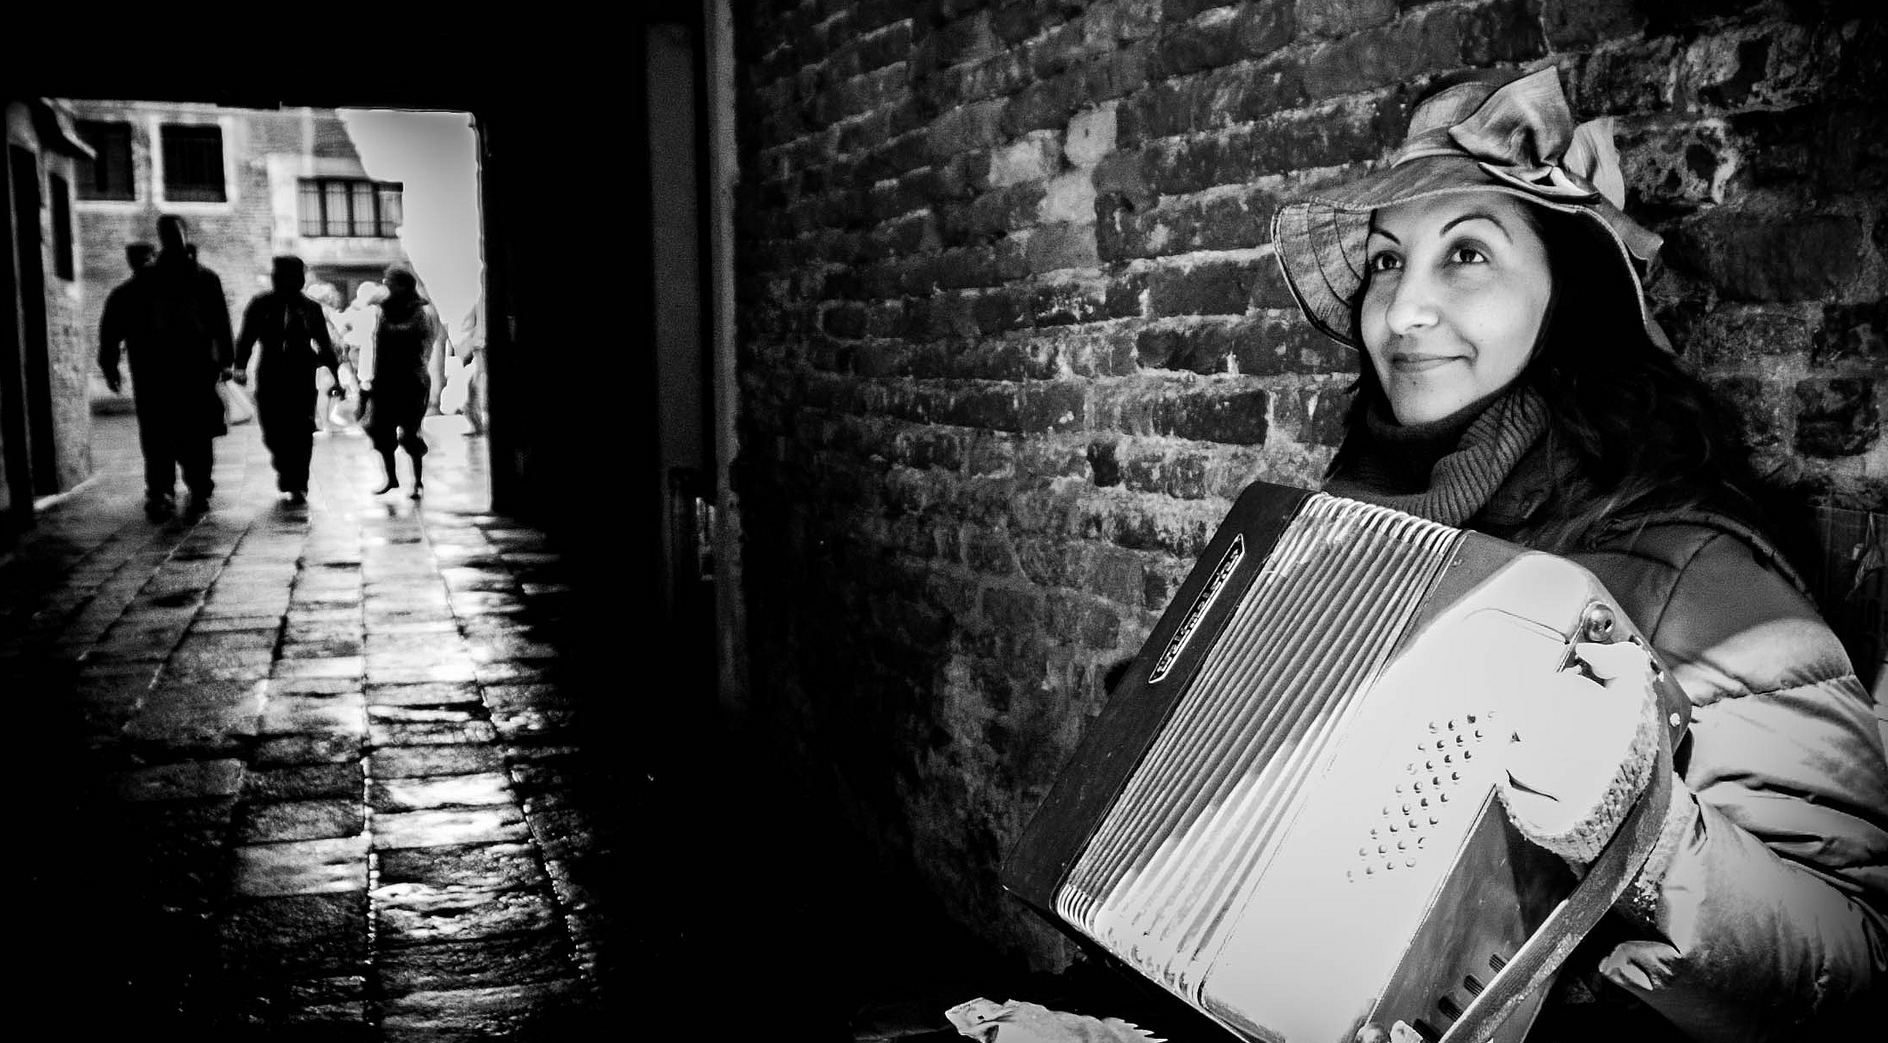 I photographed this busker in the half light of an alley following a wet and windy morning in Venice.  The combination of the light, the wet cobbles and the people walking towards her makes a story and one unlikely to be photographed by others that day.